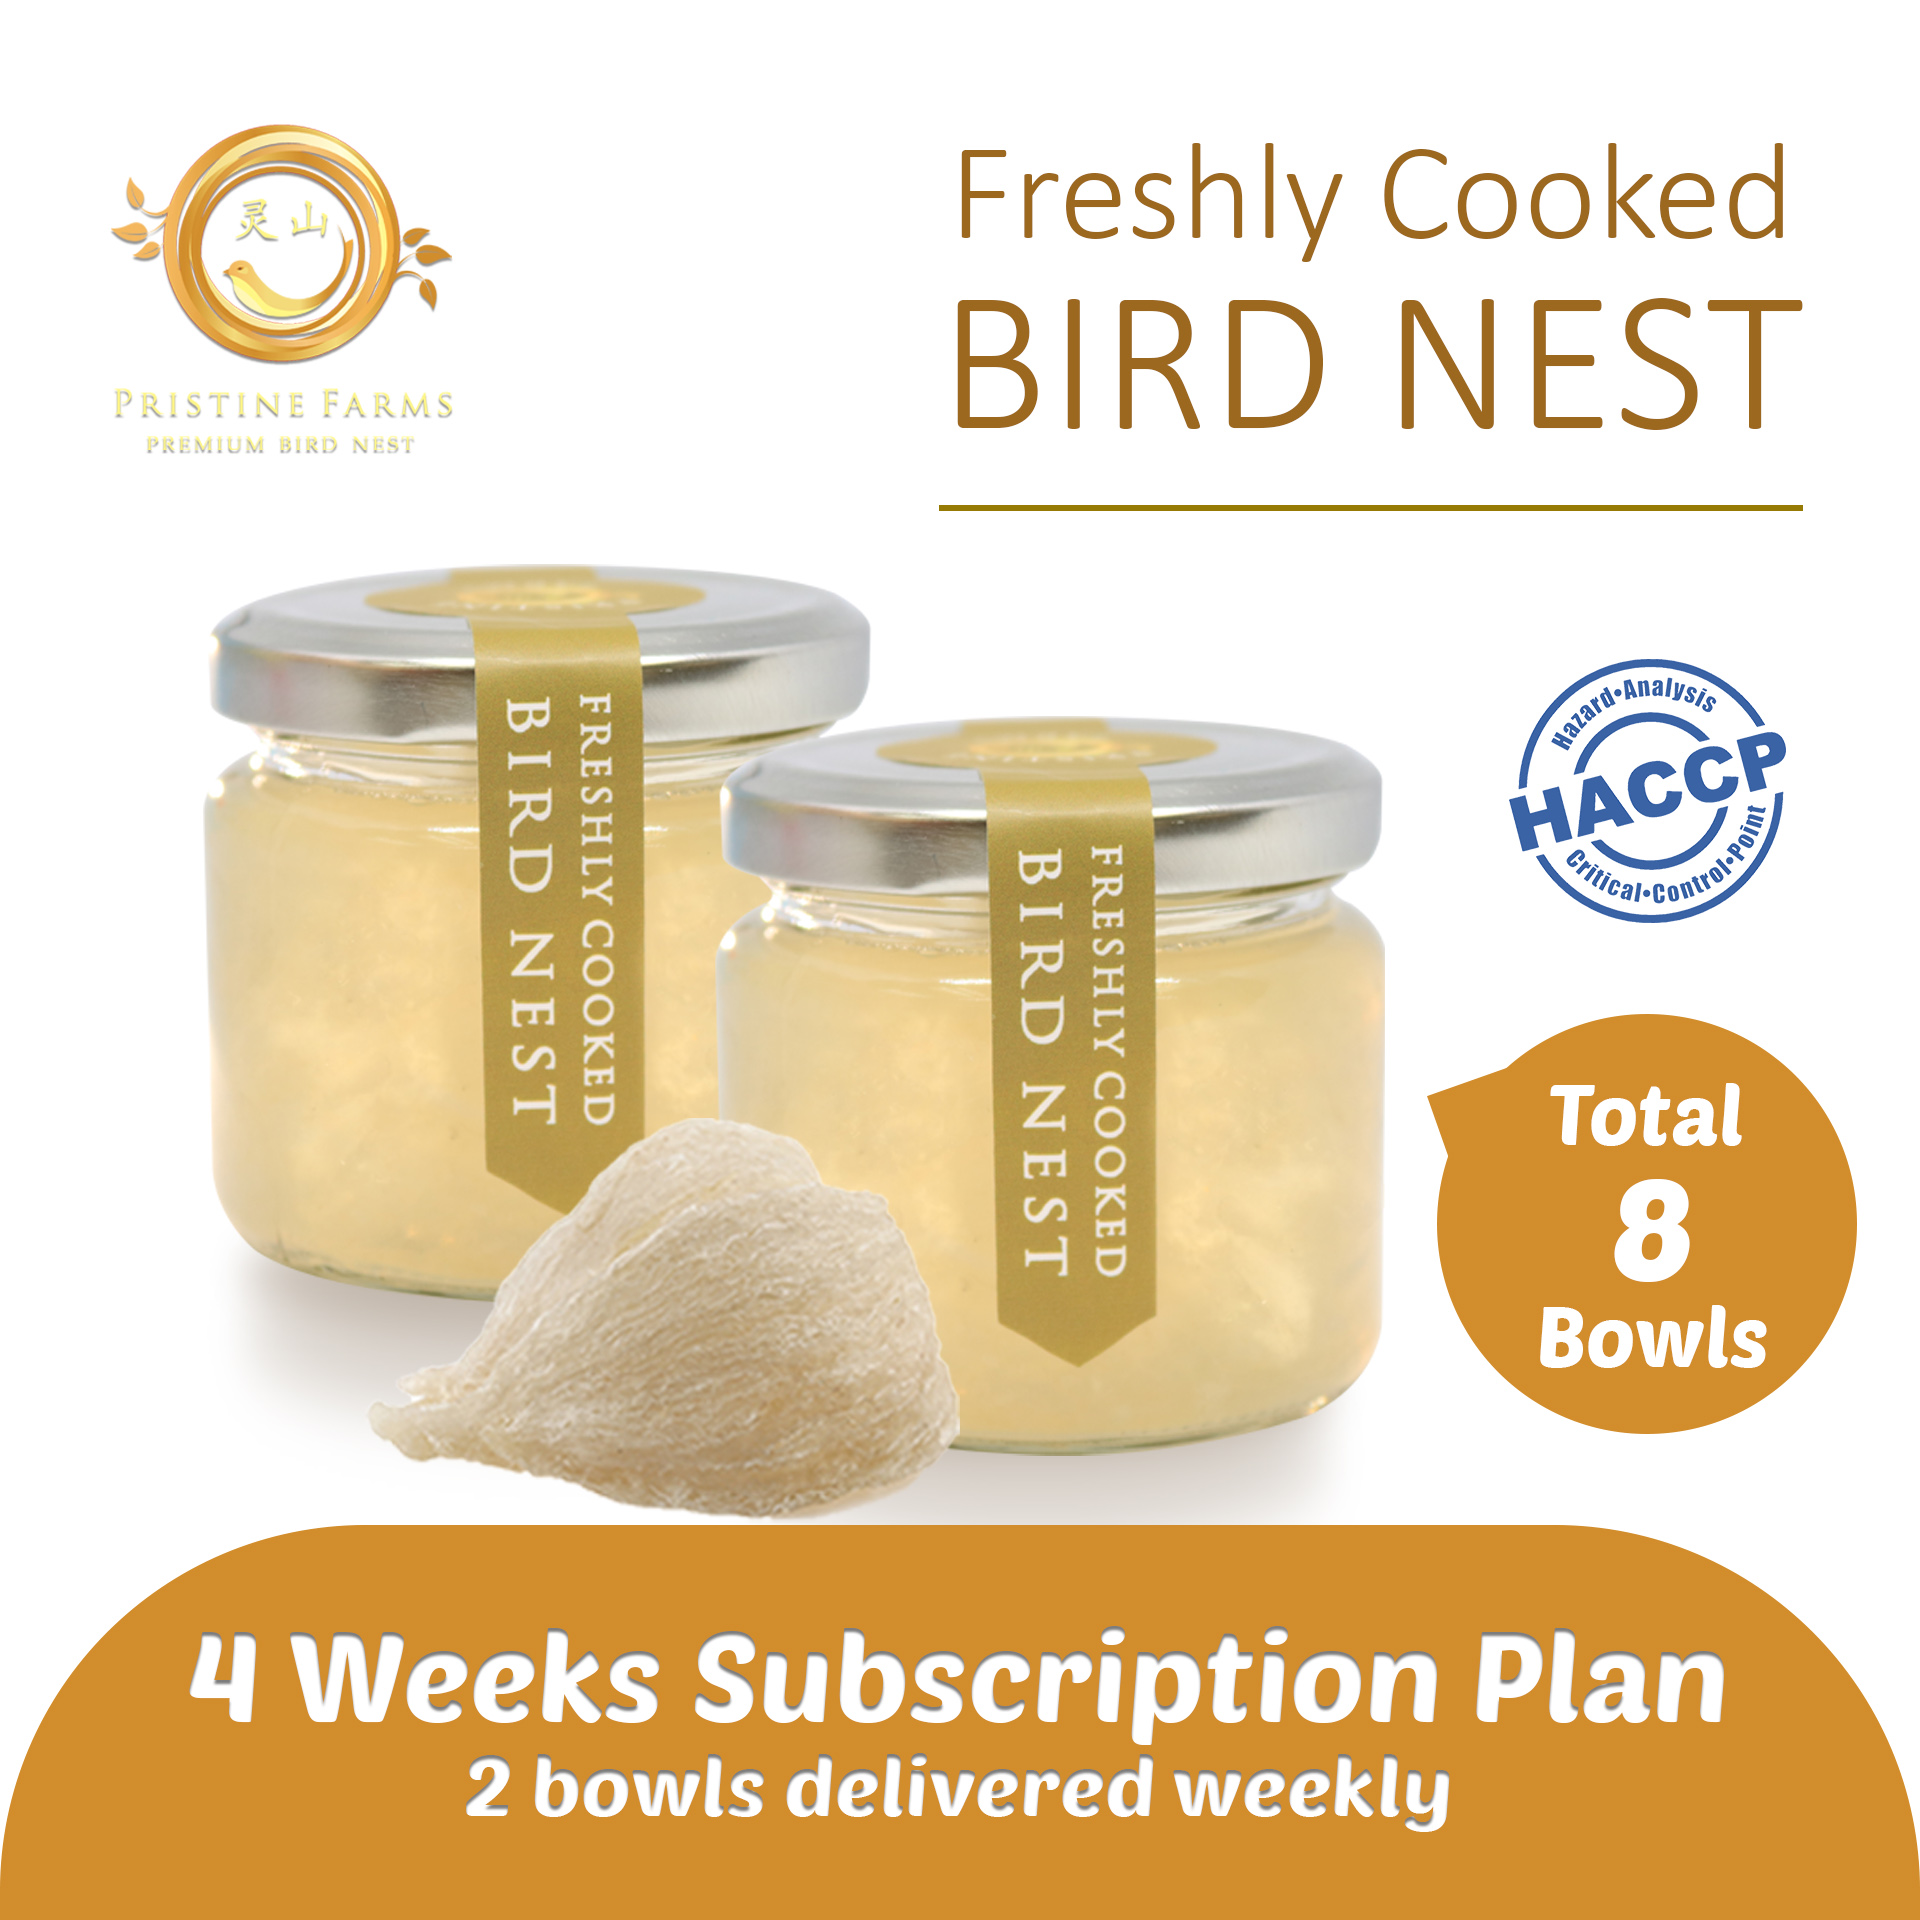 baby-fair Pristine Farm Freshly Cooked Bird Nest Soup Concentrate - 4 Weeks Subscription Plan